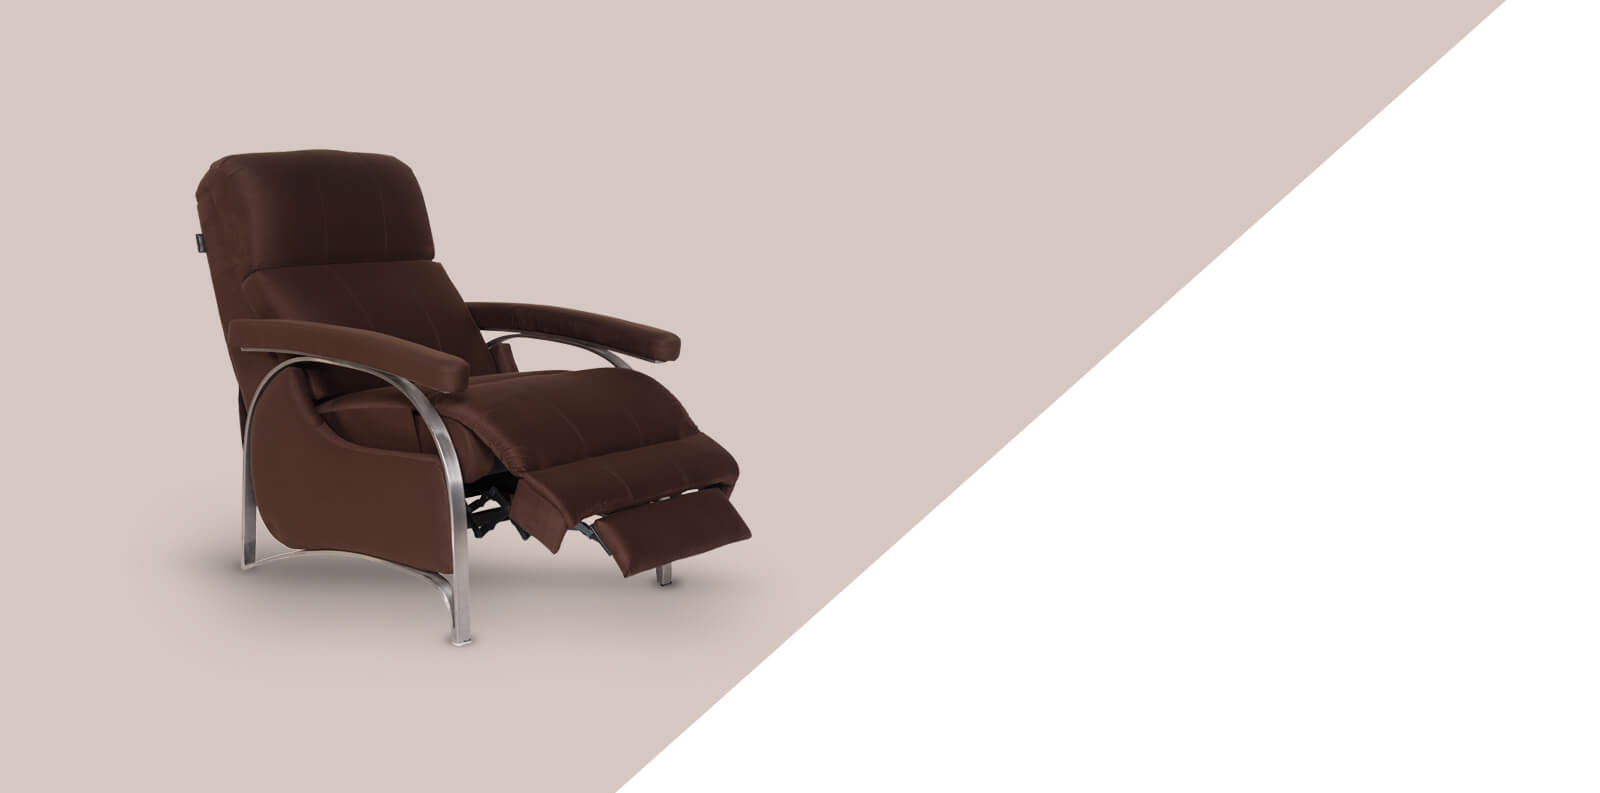 Marvelous Buy Rocking Chair India Kawachi Easy Folding Comfort Unemploymentrelief Wooden Chair Designs For Living Room Unemploymentrelieforg